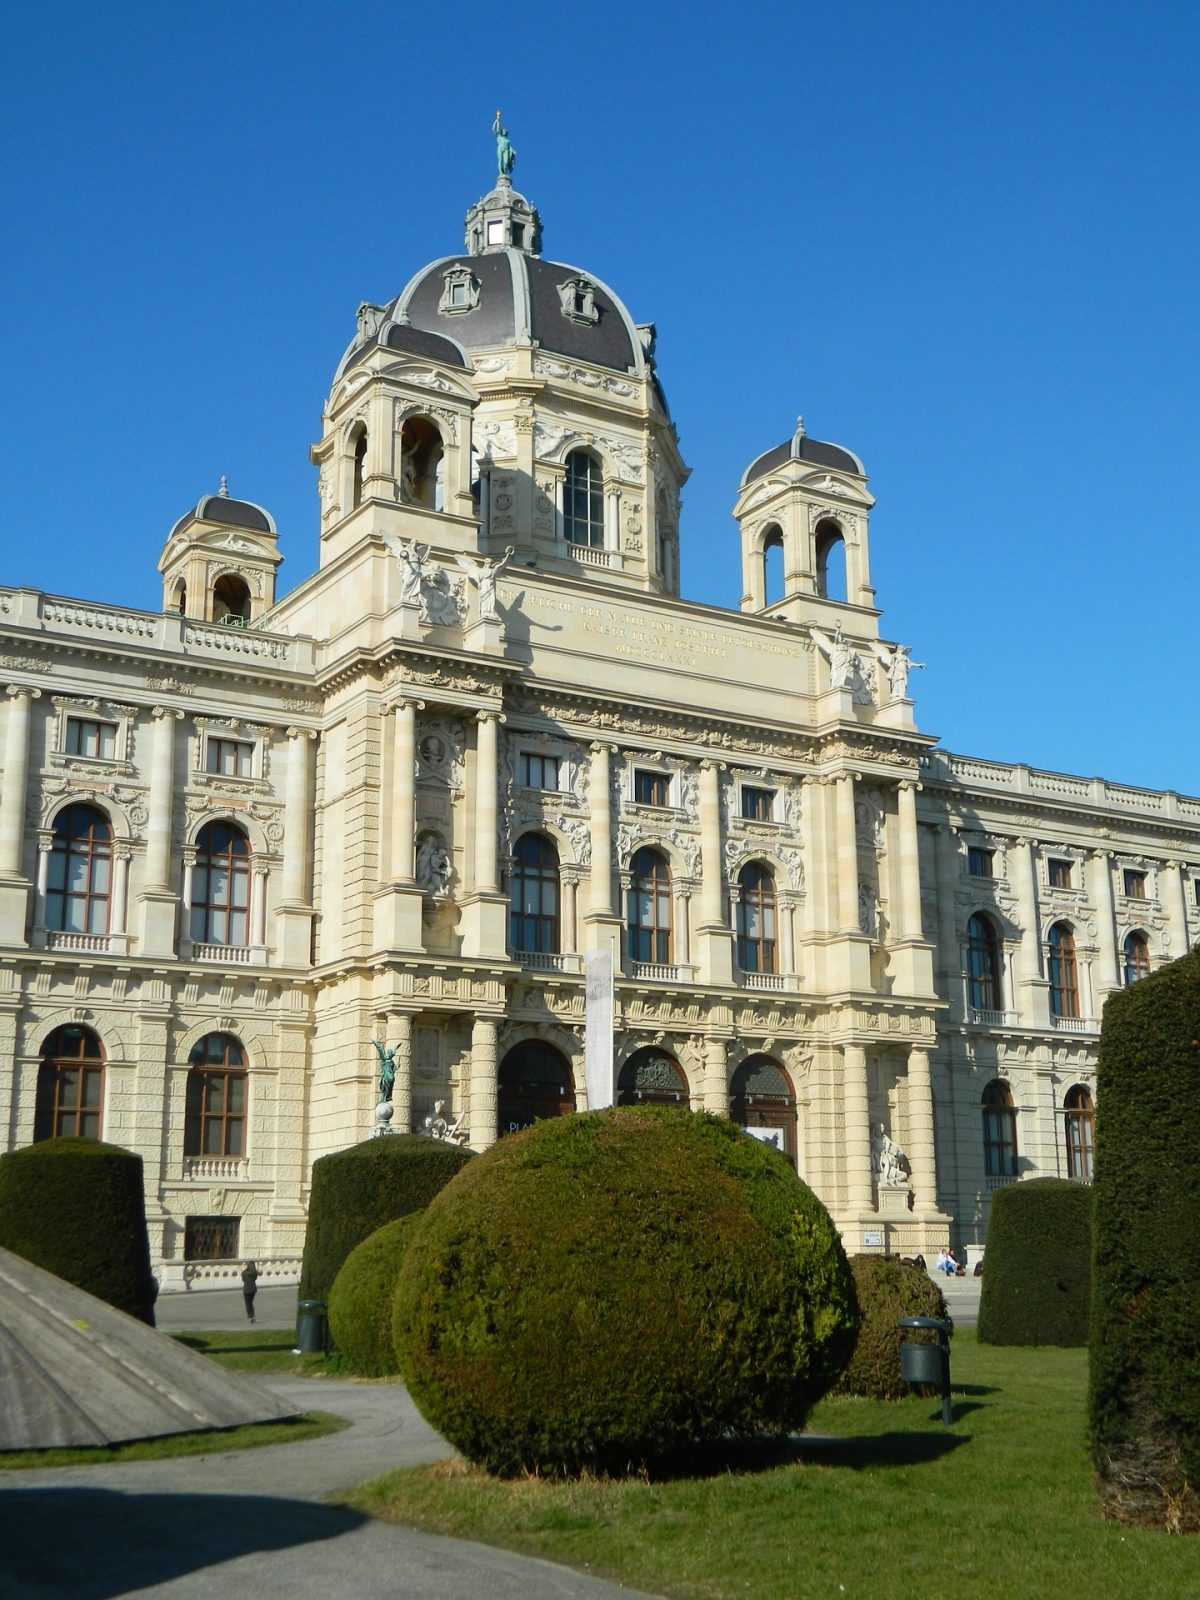 There are endless rooms to explore at Vienna National History Museum with dinosaur skeletons, precious stones and meteorites